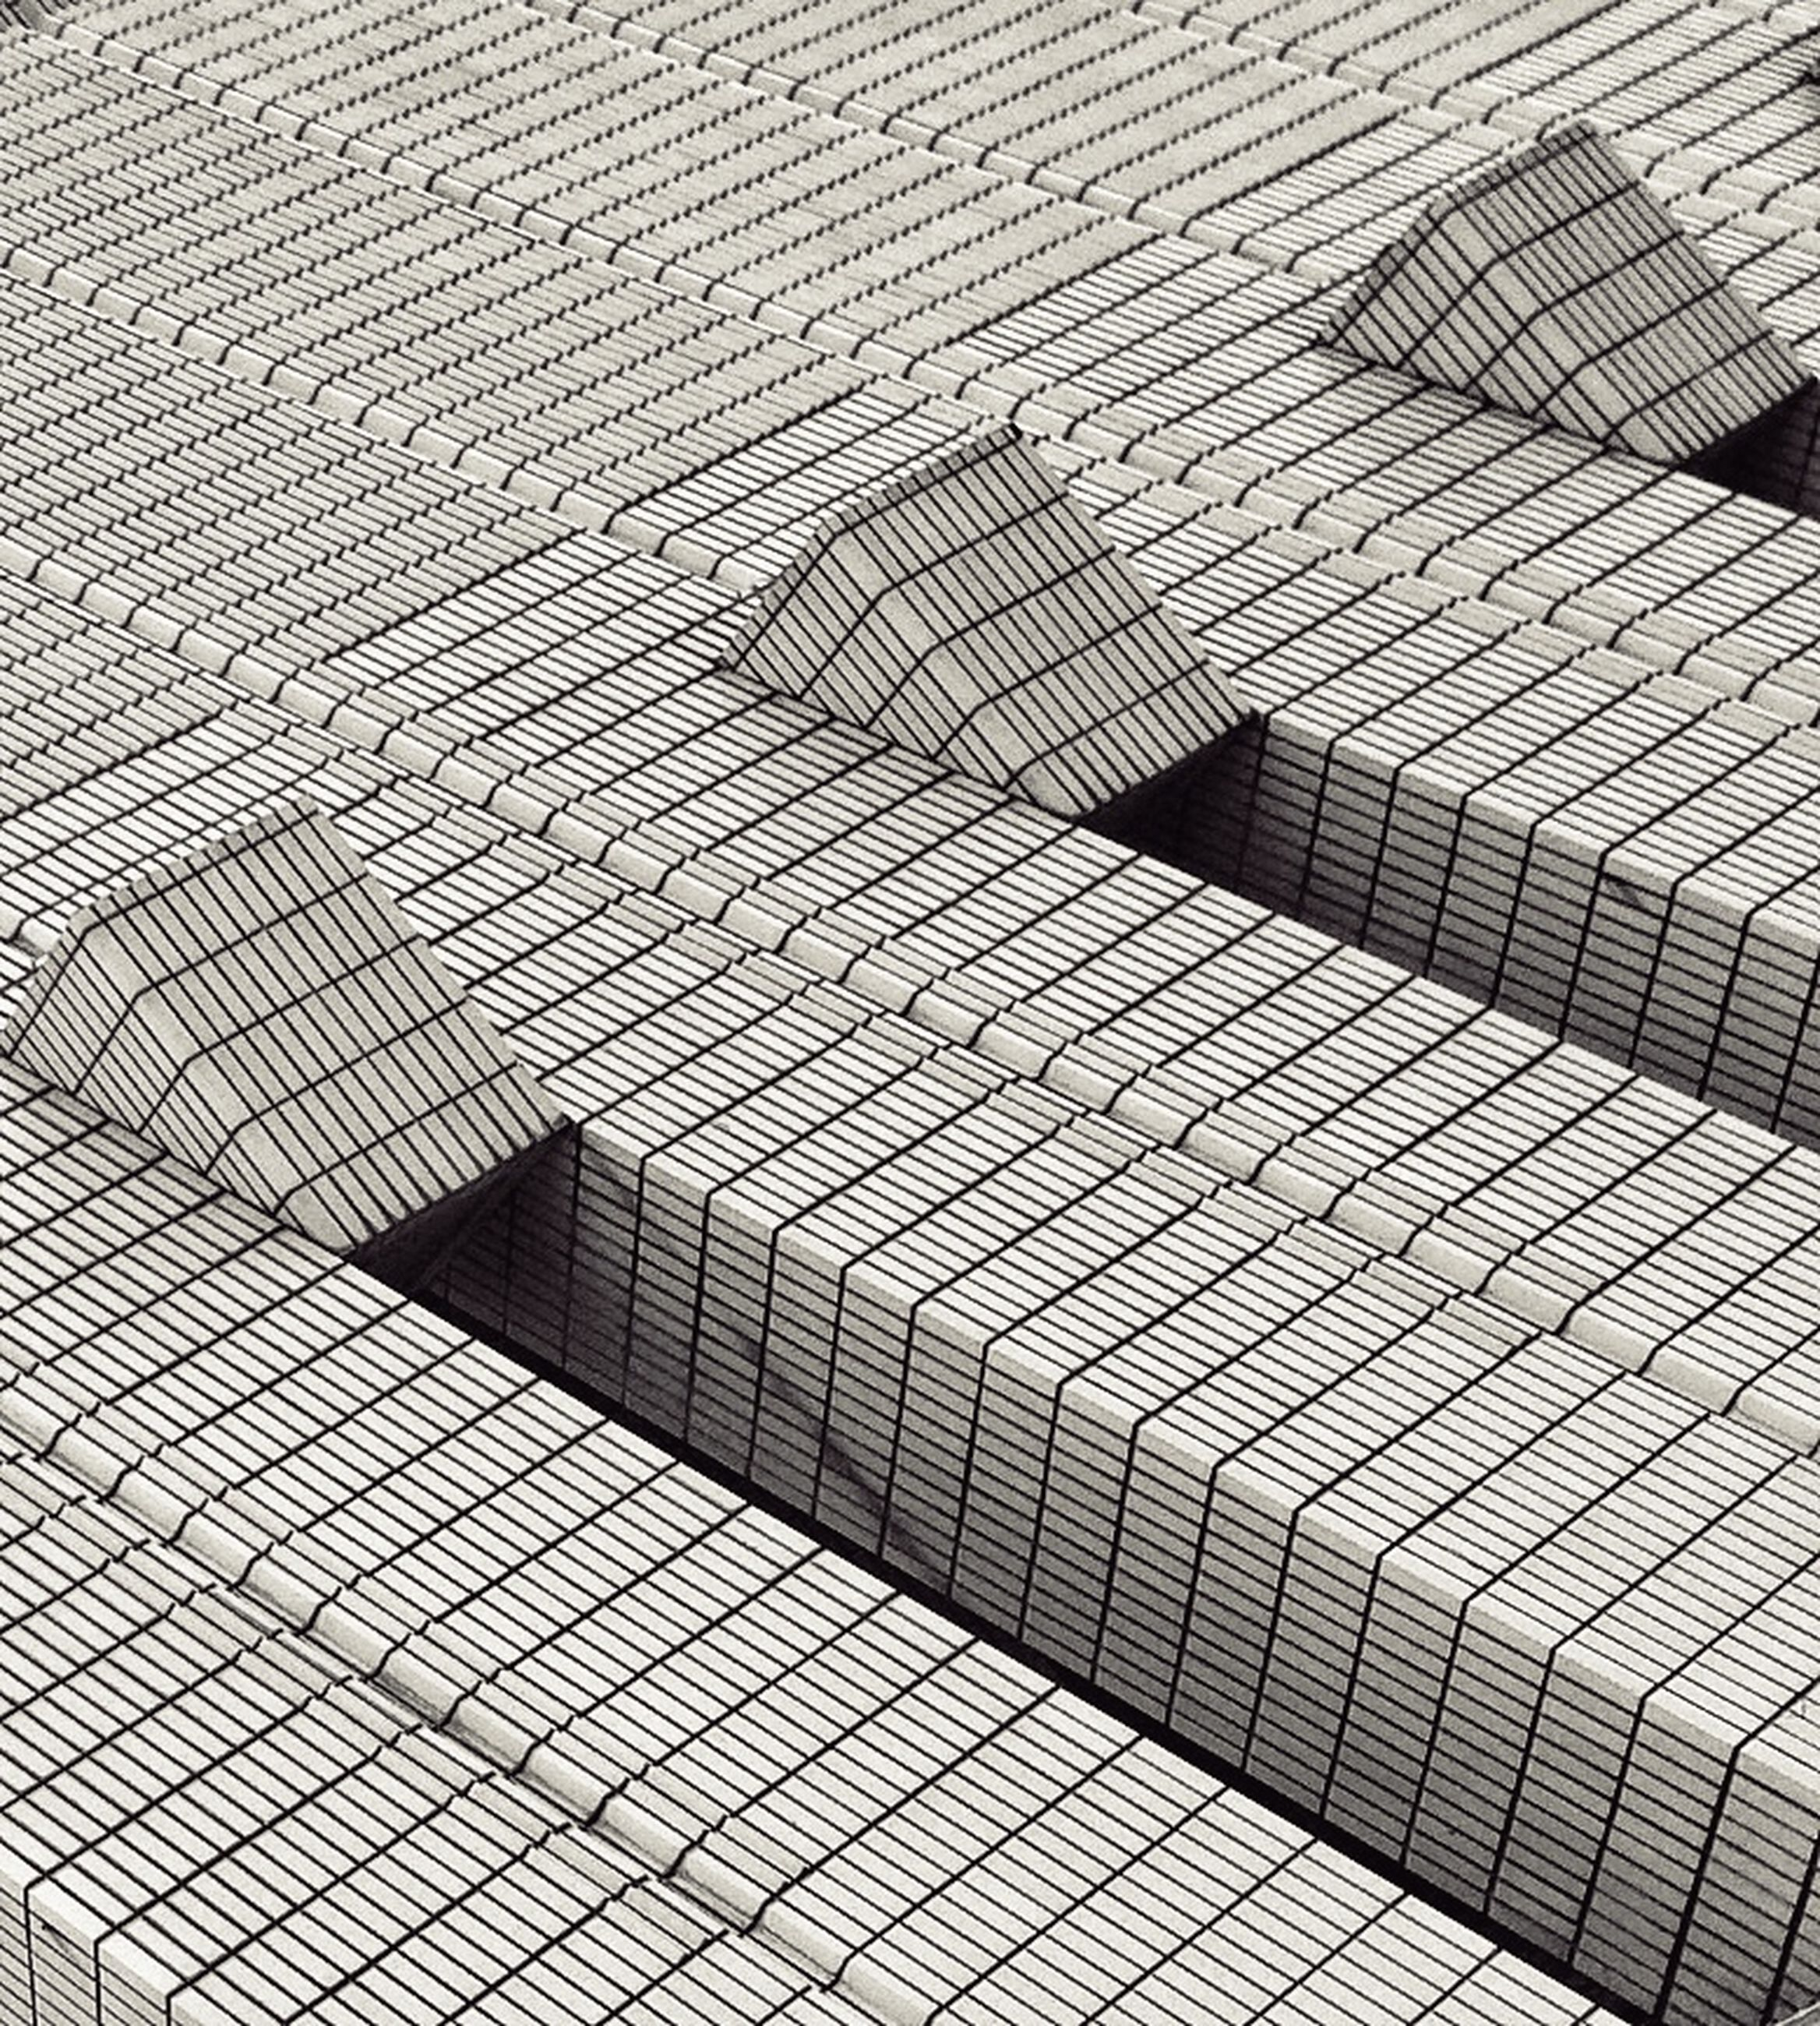 pattern, full frame, high angle view, backgrounds, shadow, sunlight, textured, metal, design, day, fence, outdoors, repetition, protection, cobblestone, no people, safety, paving stone, footpath, geometric shape